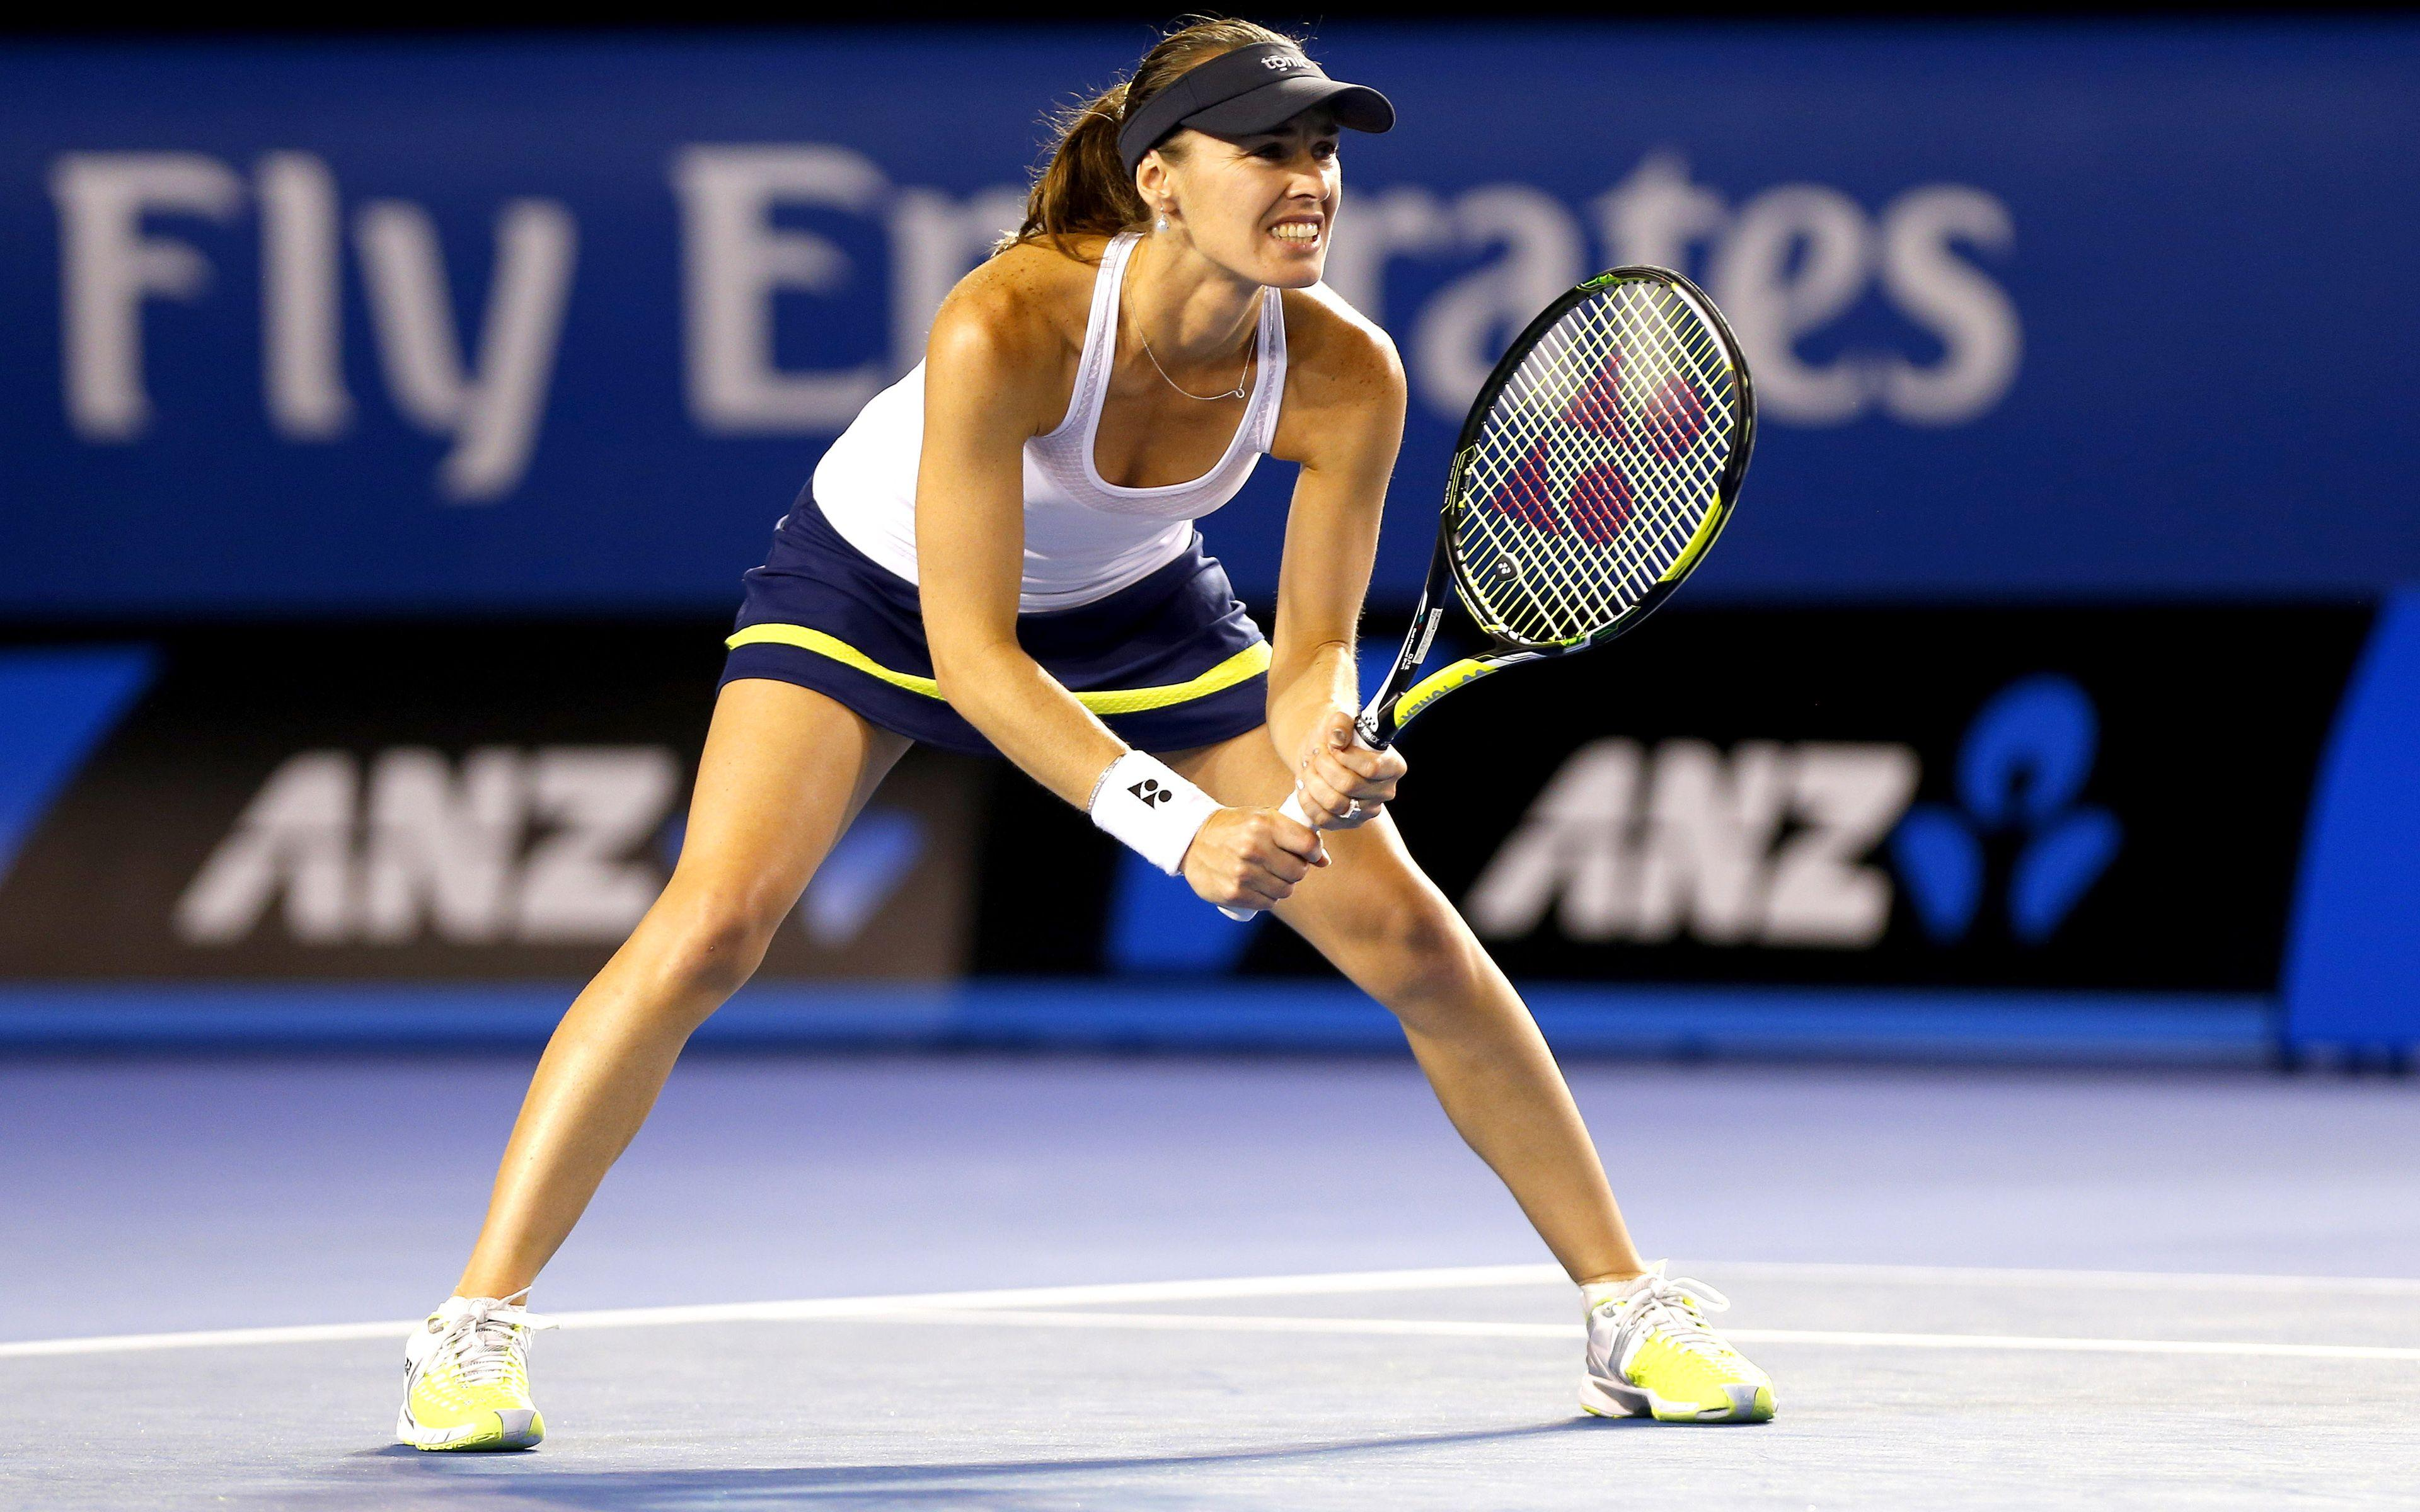 Download wallpapers Martina Hingis, 4k, WTA, match, tennis players